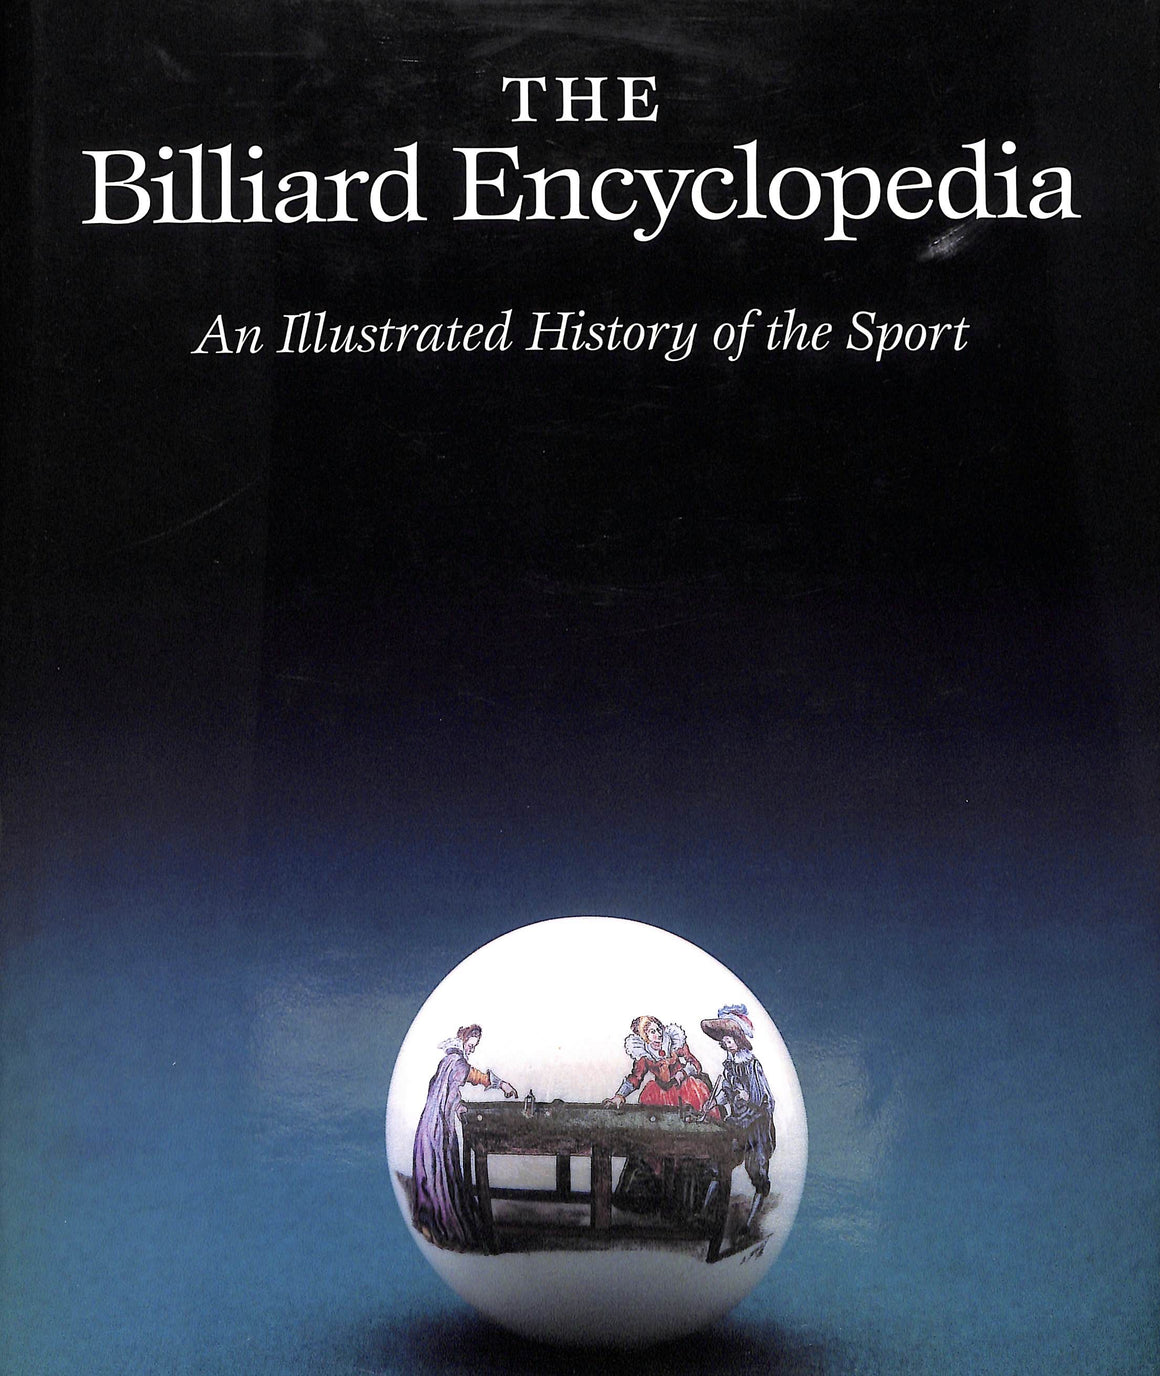 """The Billiard Encyclopedia: An Illustrated History of the Sport"" 1994 STEIN, Victor and RUBINO, Paul"